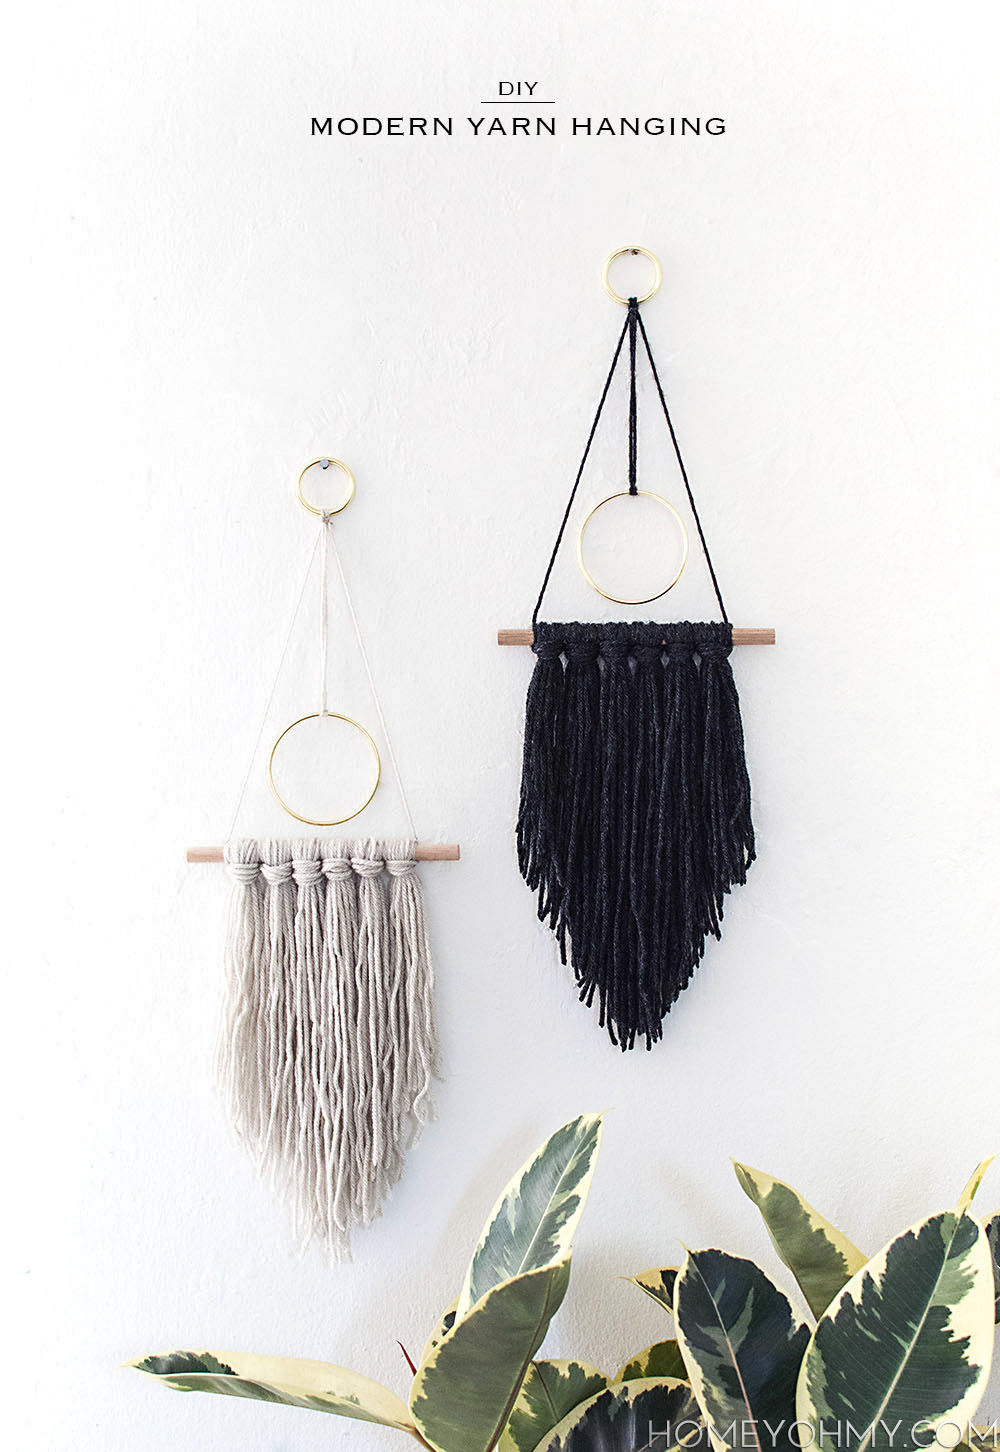 modern picture hanging ideas - DIY Modern Yarn Hanging Homey Oh My